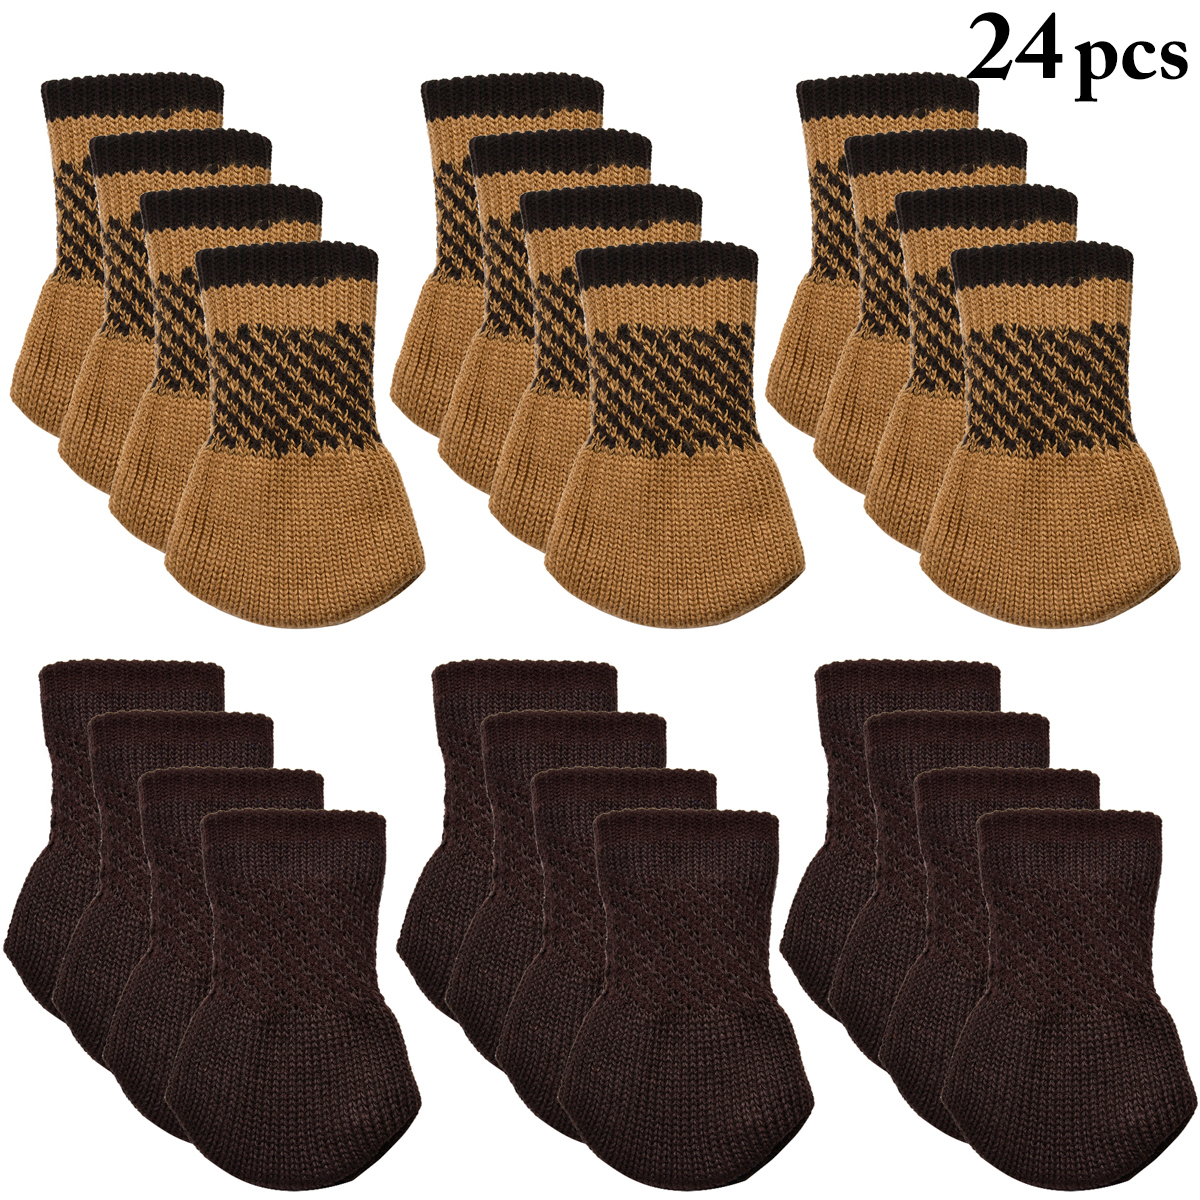 Marvelous 24Pcs Chair Socks, Outgeek Knitted Anti Skid Chair Leg Floor Protectors  Furniture Pads Table Desk Leg Covers Caps For Home Kitchen Living Room  Patio Office ...